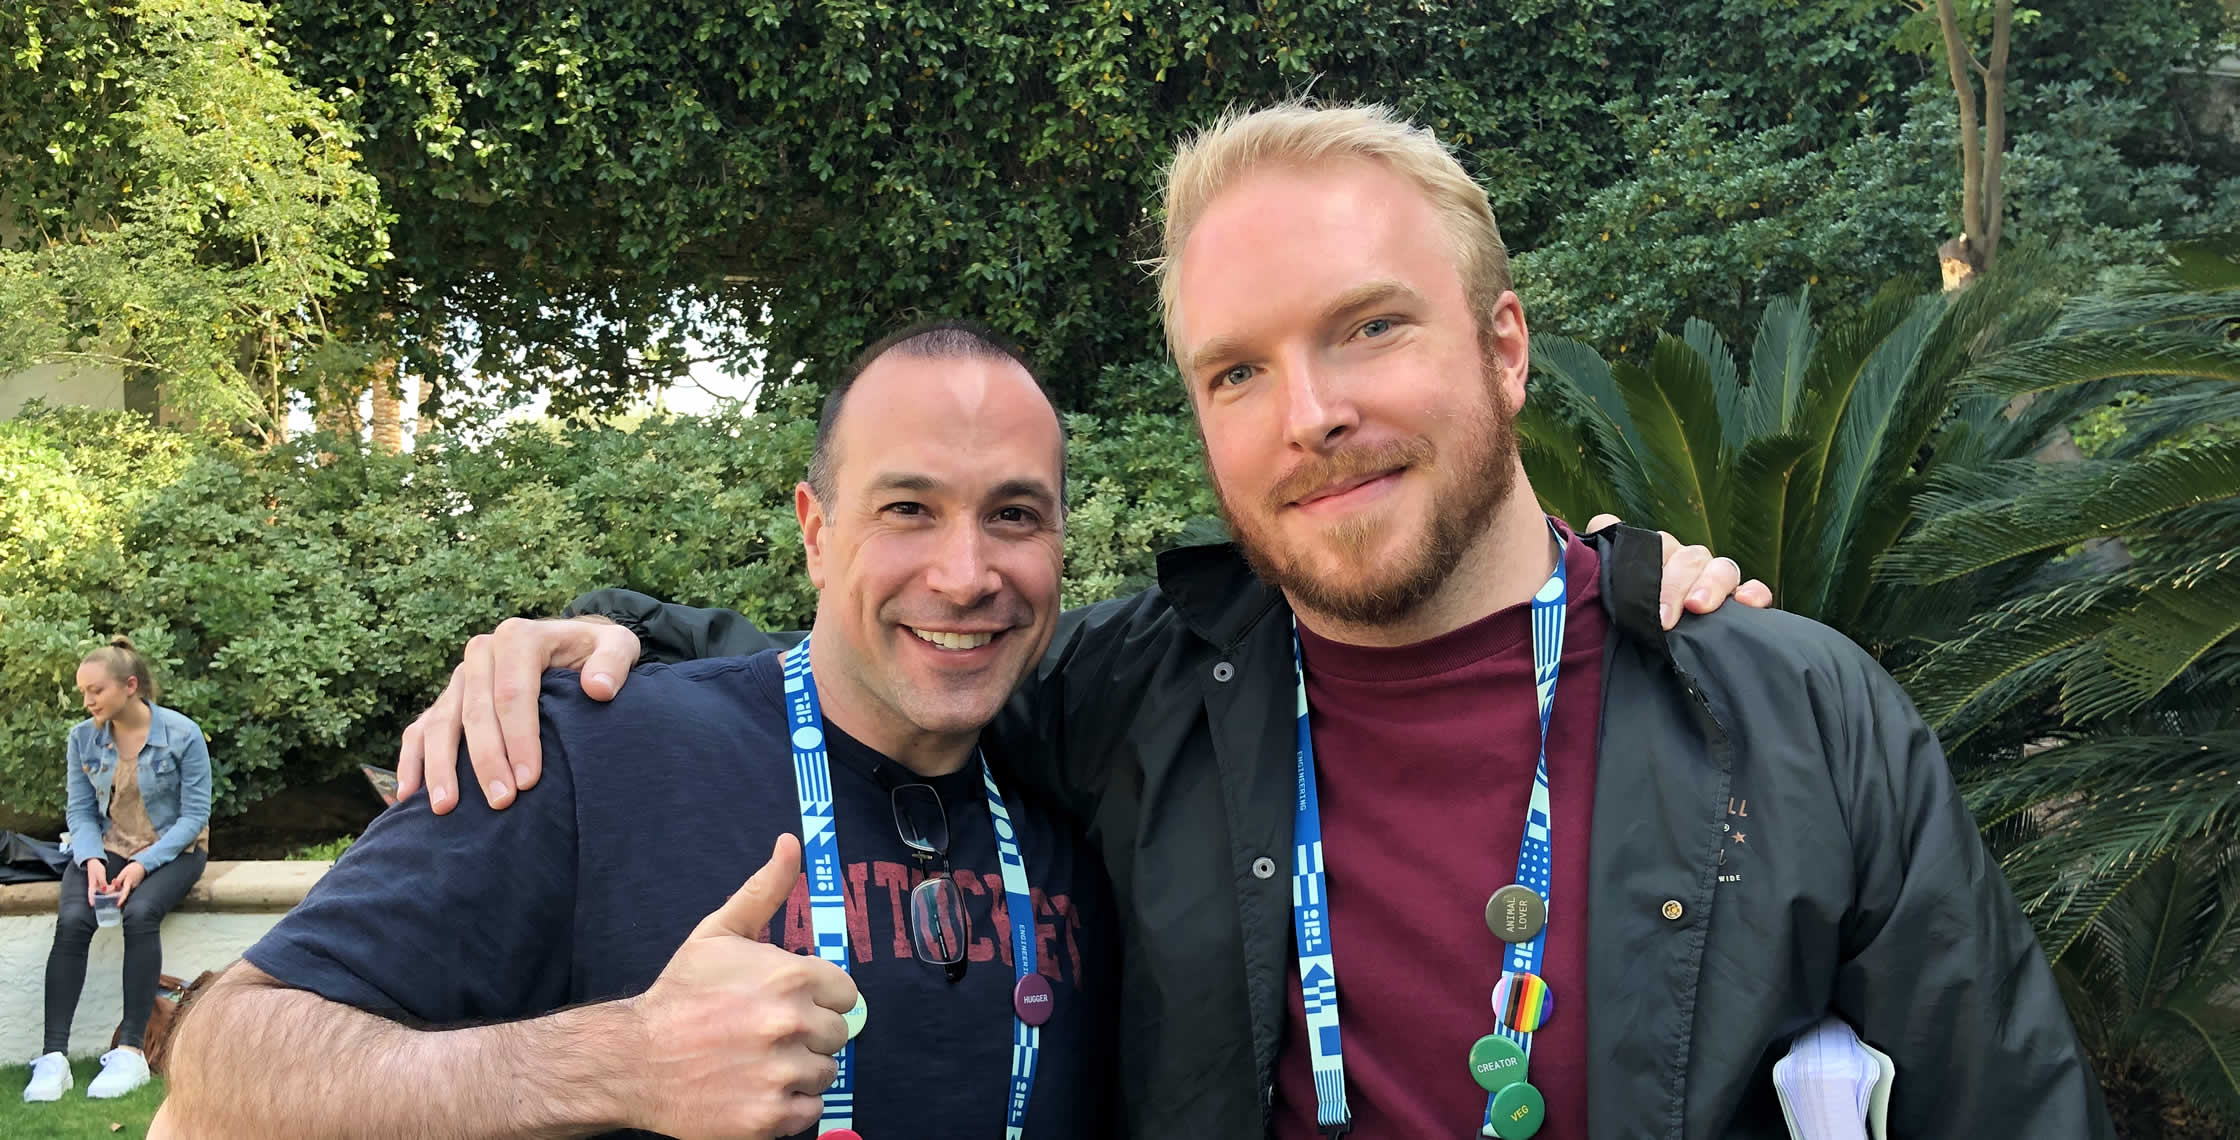 Ben Nadel at InVision In Real Life (IRL) 2019 (Phoenix, AZ) with: Sean Roberts